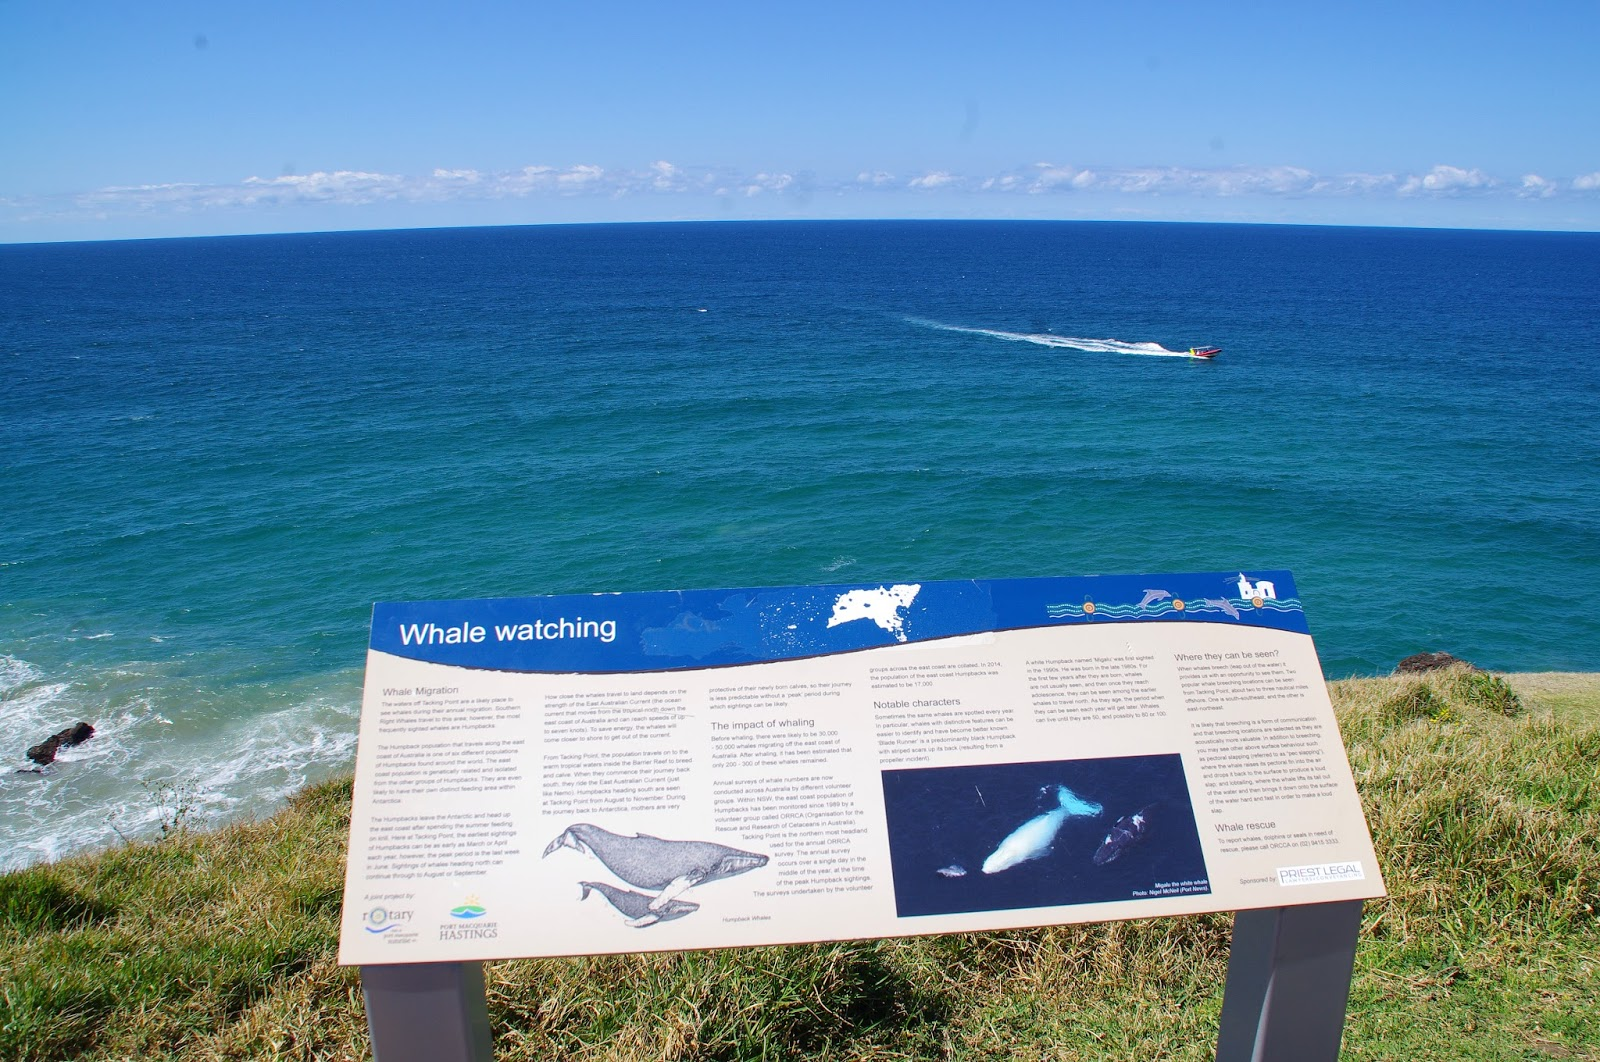 Whale Watching in Port Macquarie, Australia